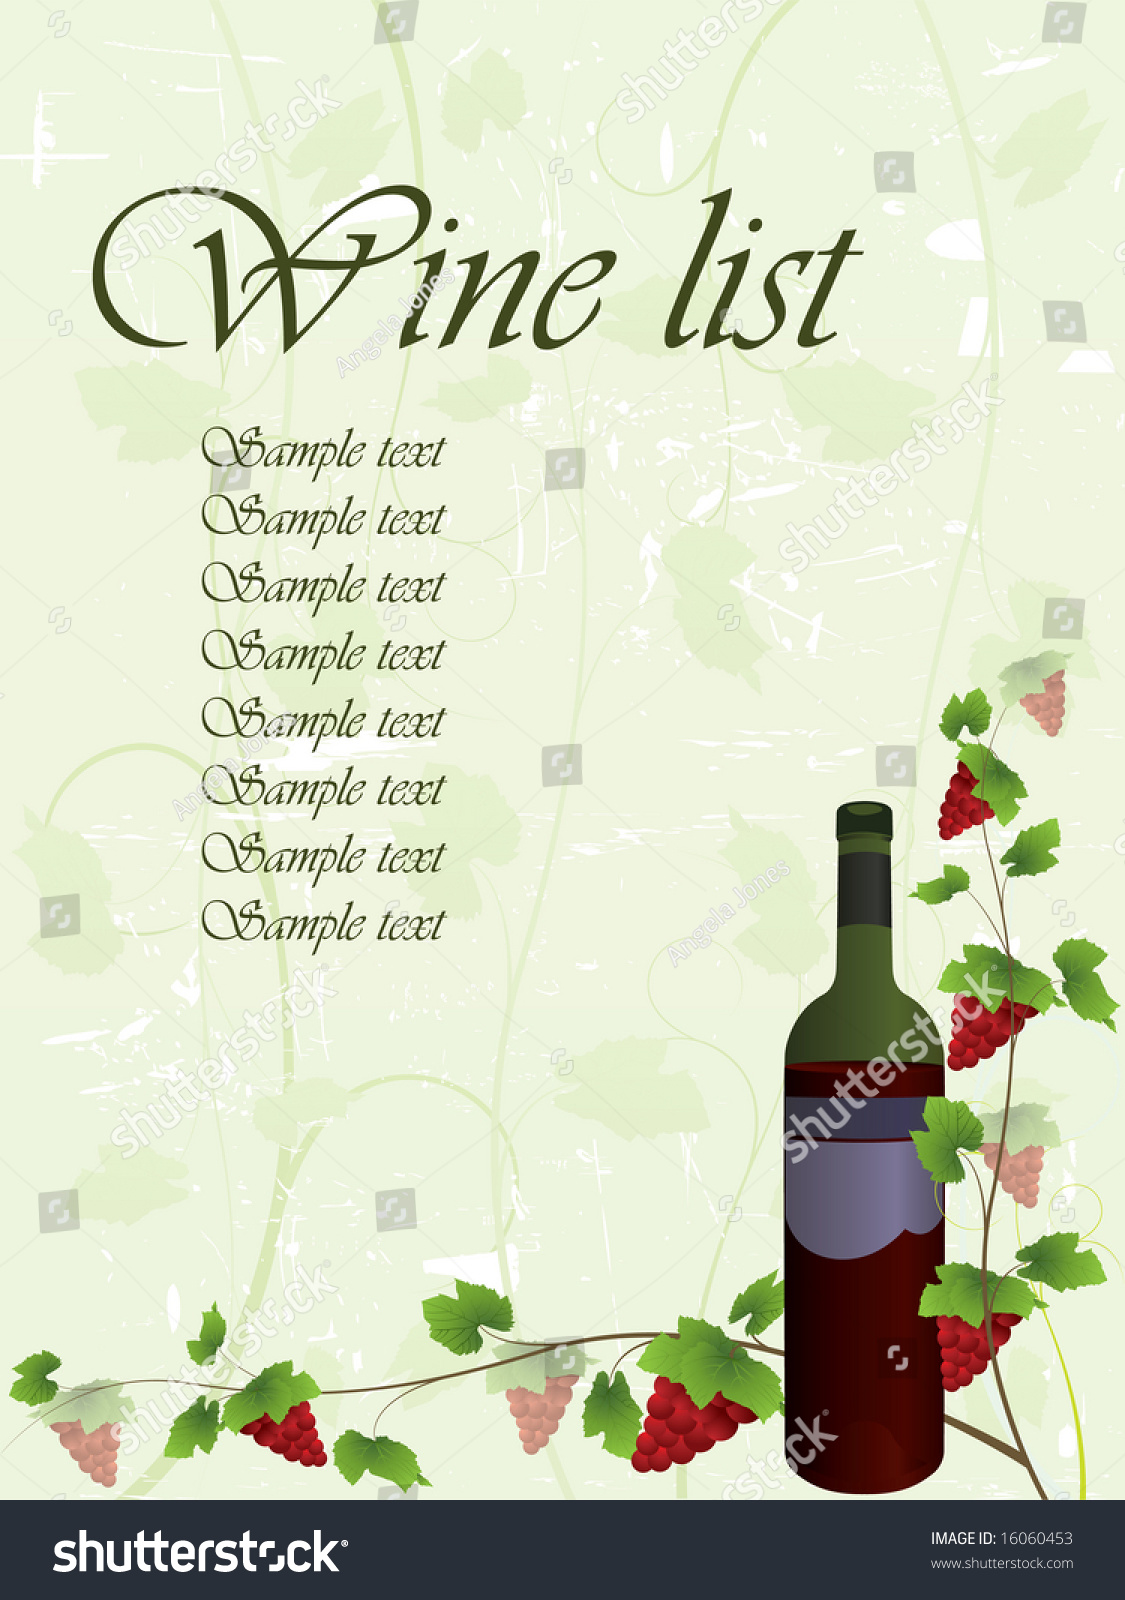 wine list background stock vector illustration 16060453